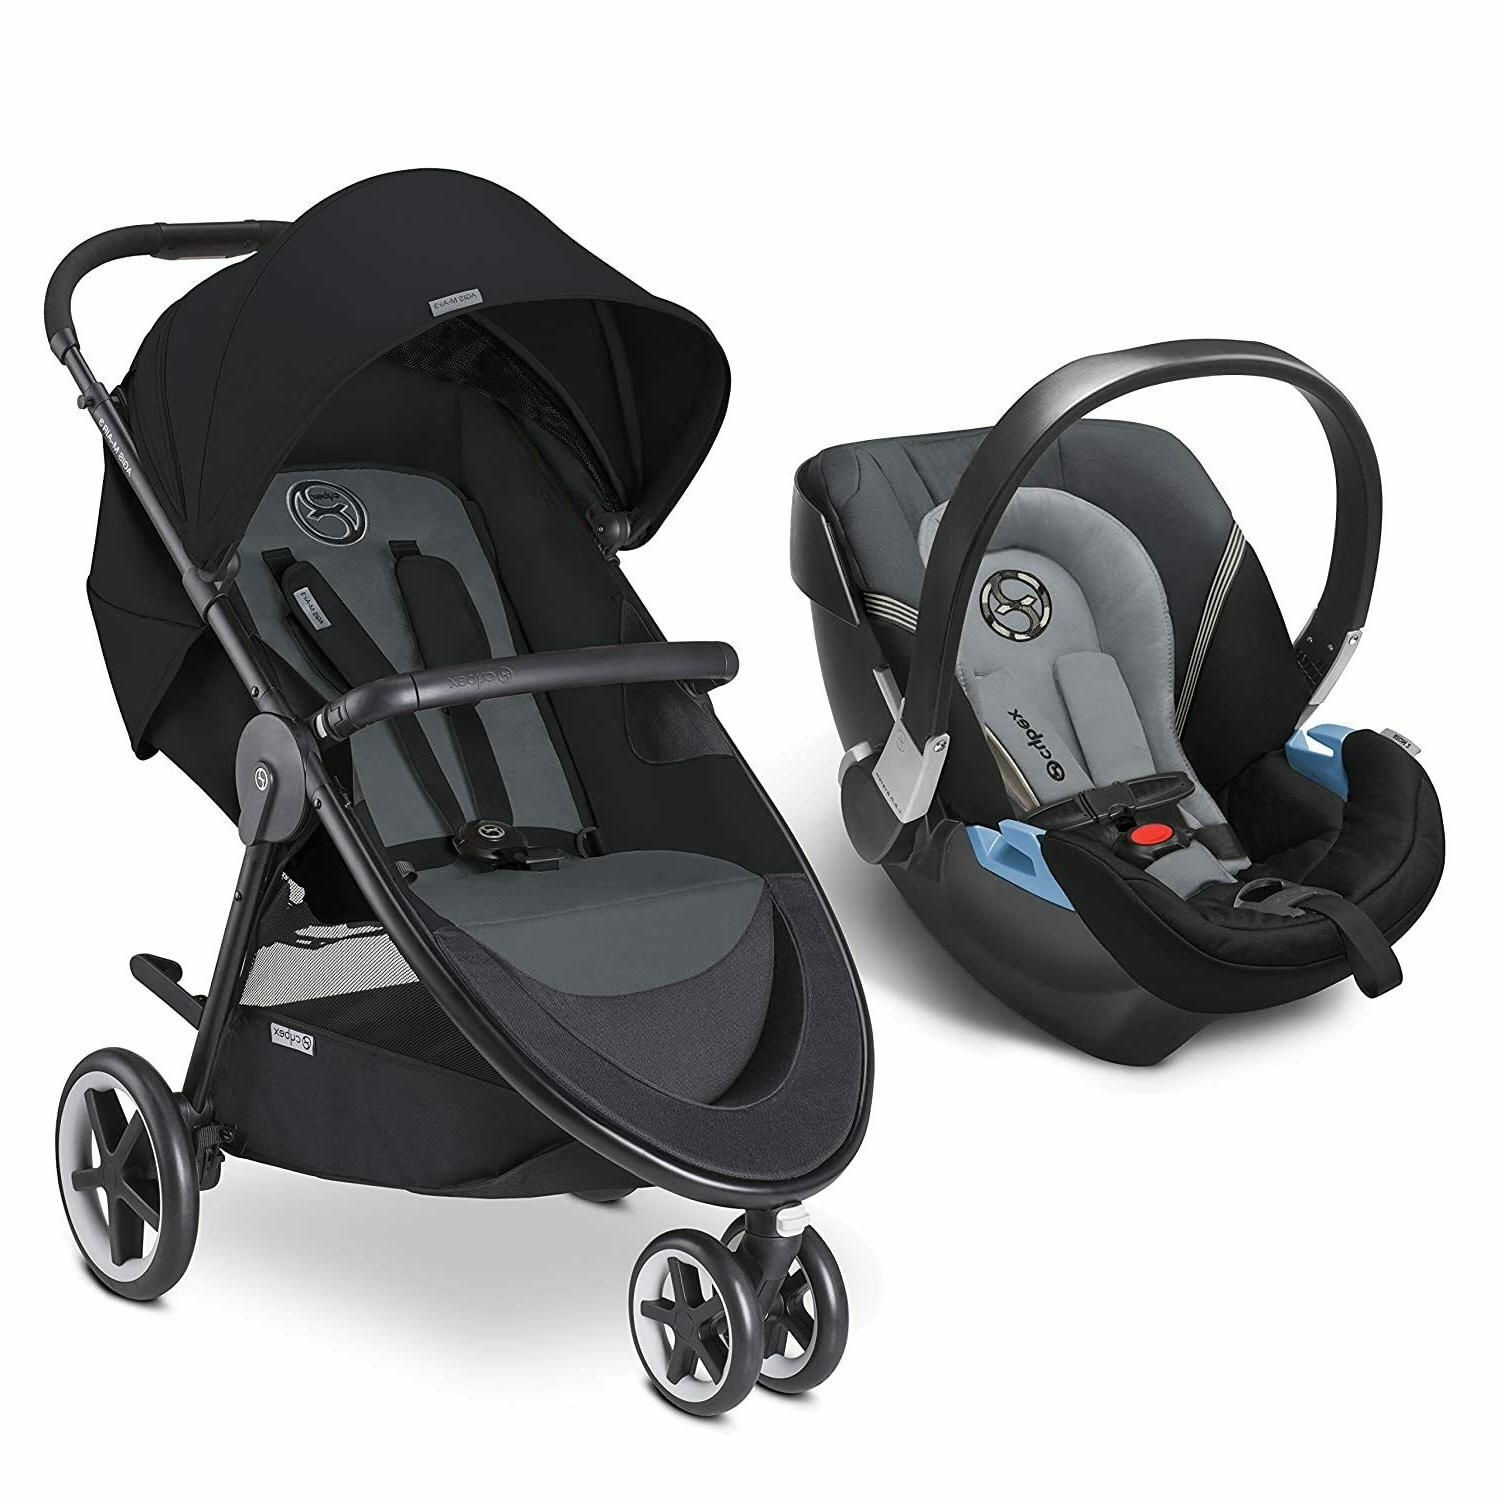 3 in 1 with infant car seat